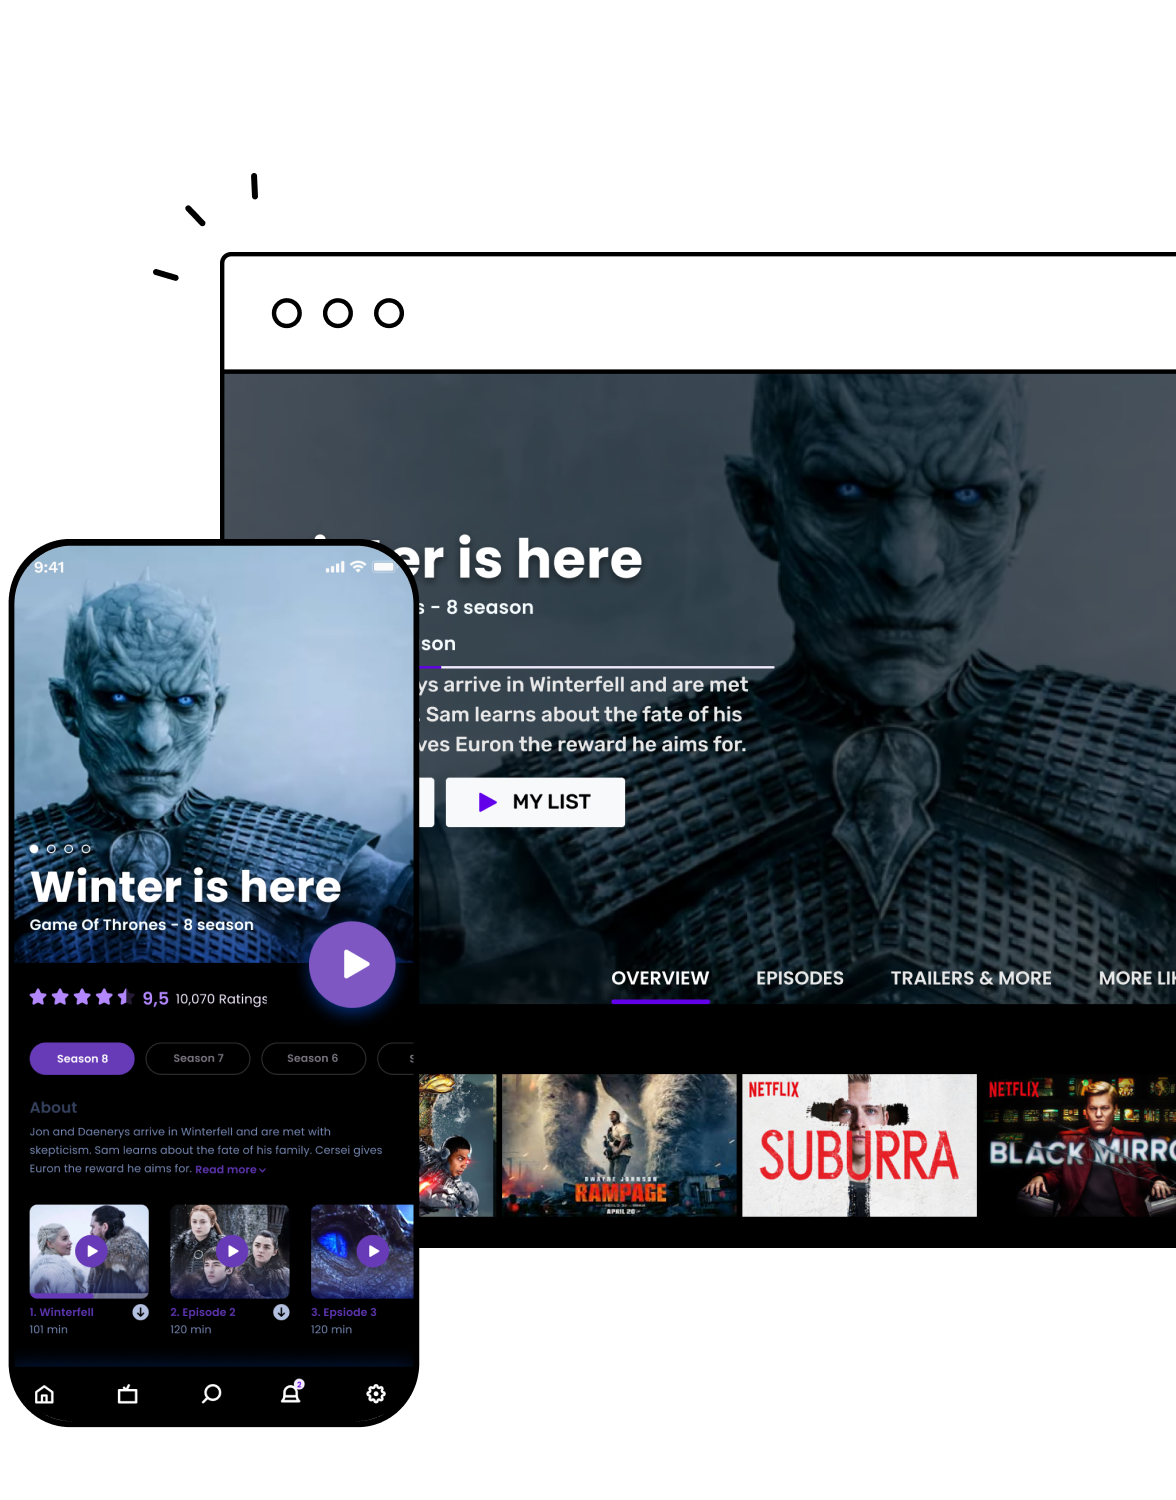 PWA screen for movie streaming services